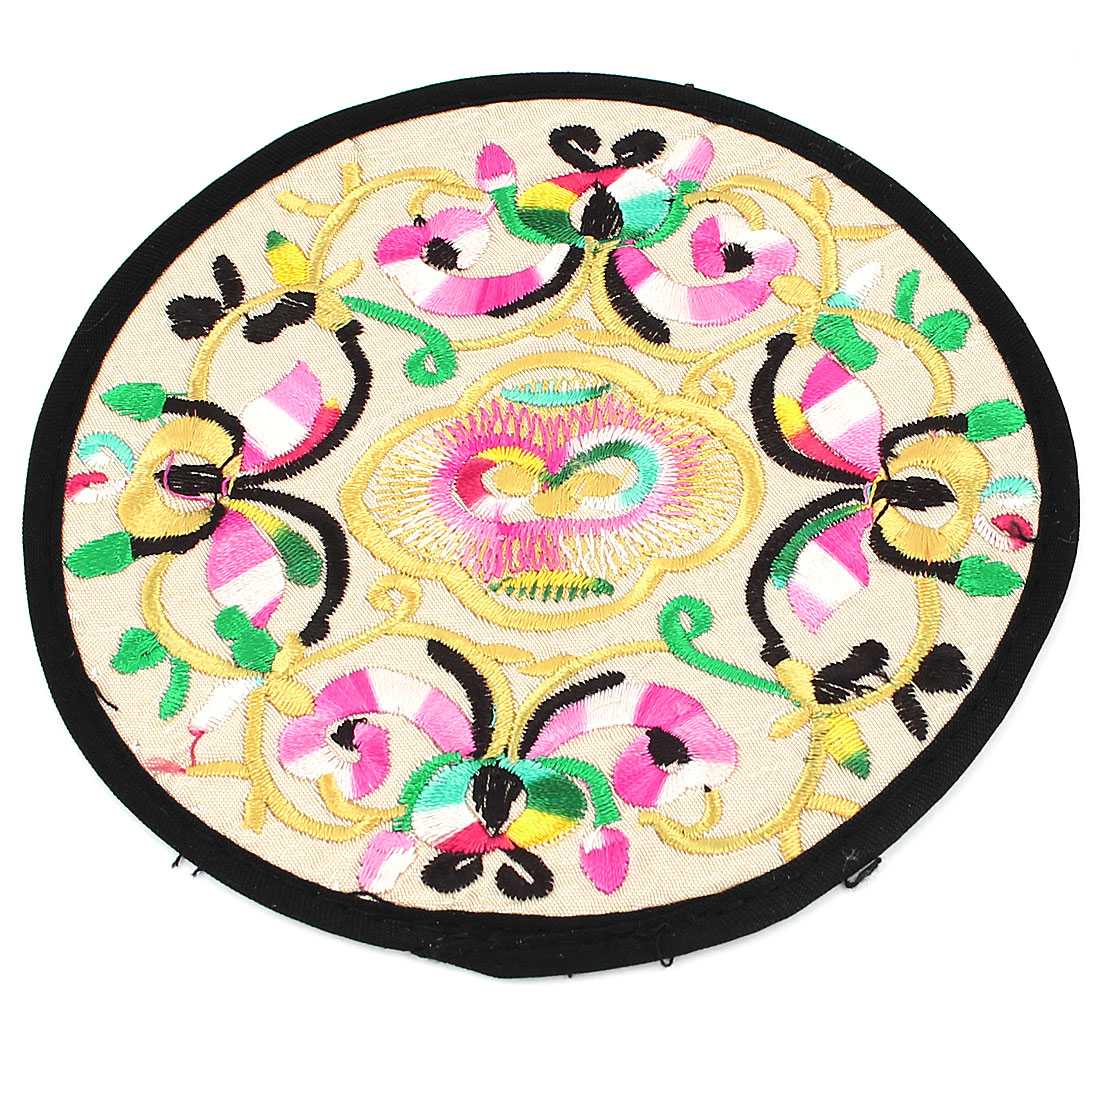 Round Shaped Embroidered Floral Pattern Heat Insulation Coaster Cup Mat Pad Off White